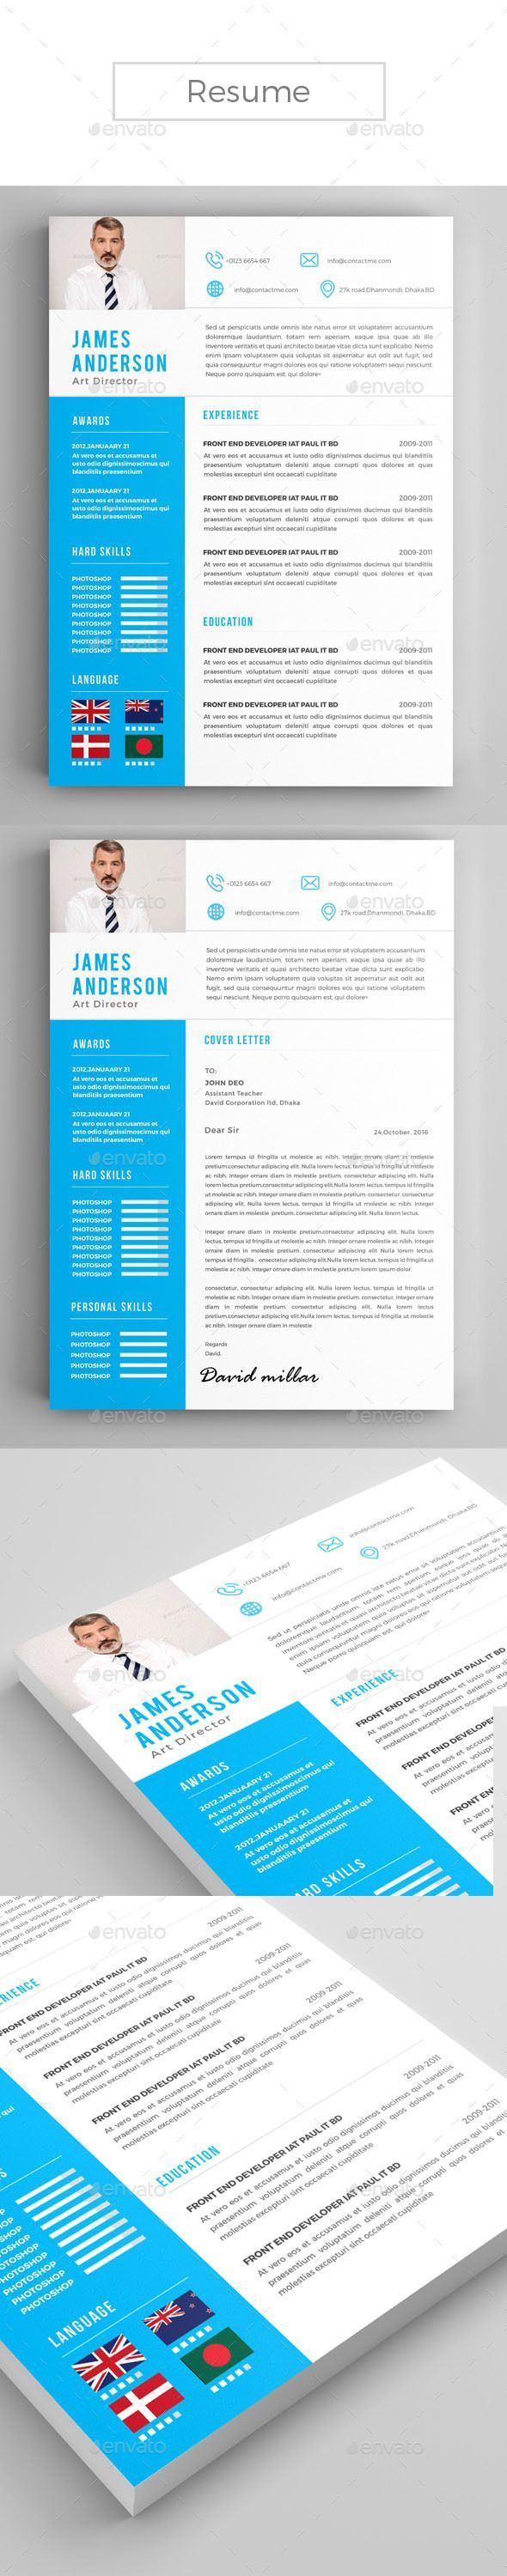 Resume Design Template Resumes Template PSD. Download…